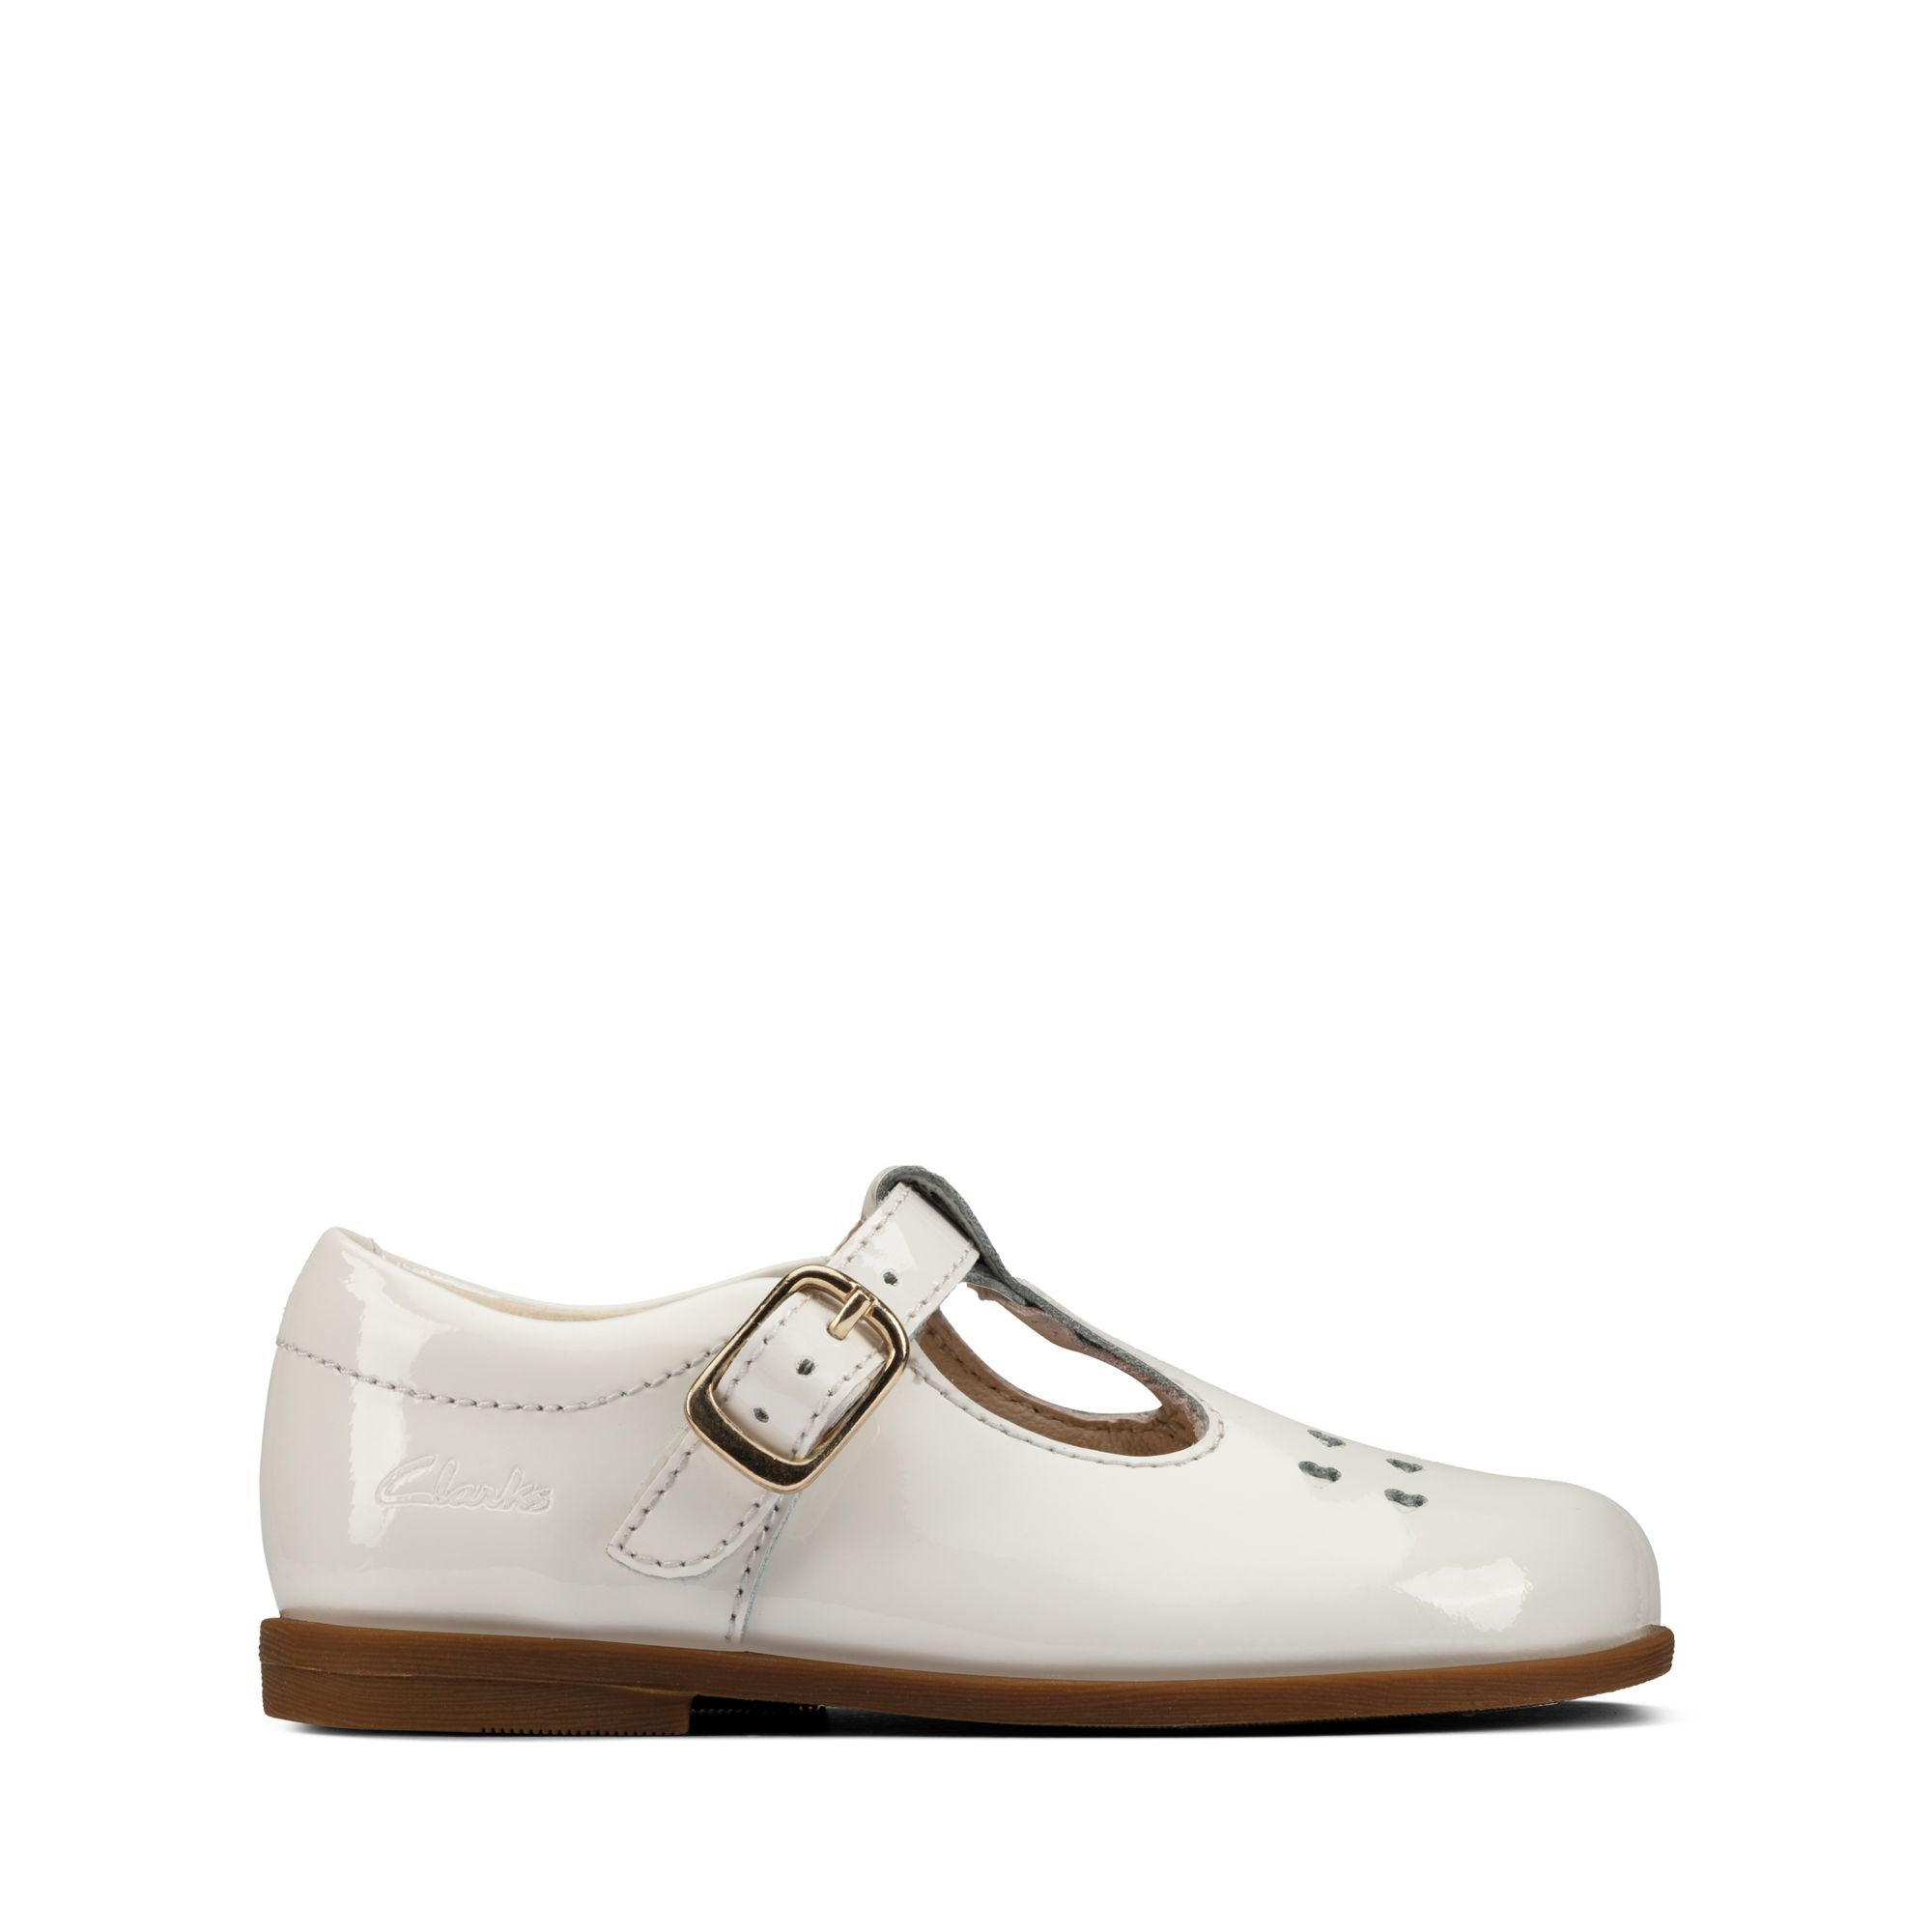 Clarks Drew Play Toddler – Leather